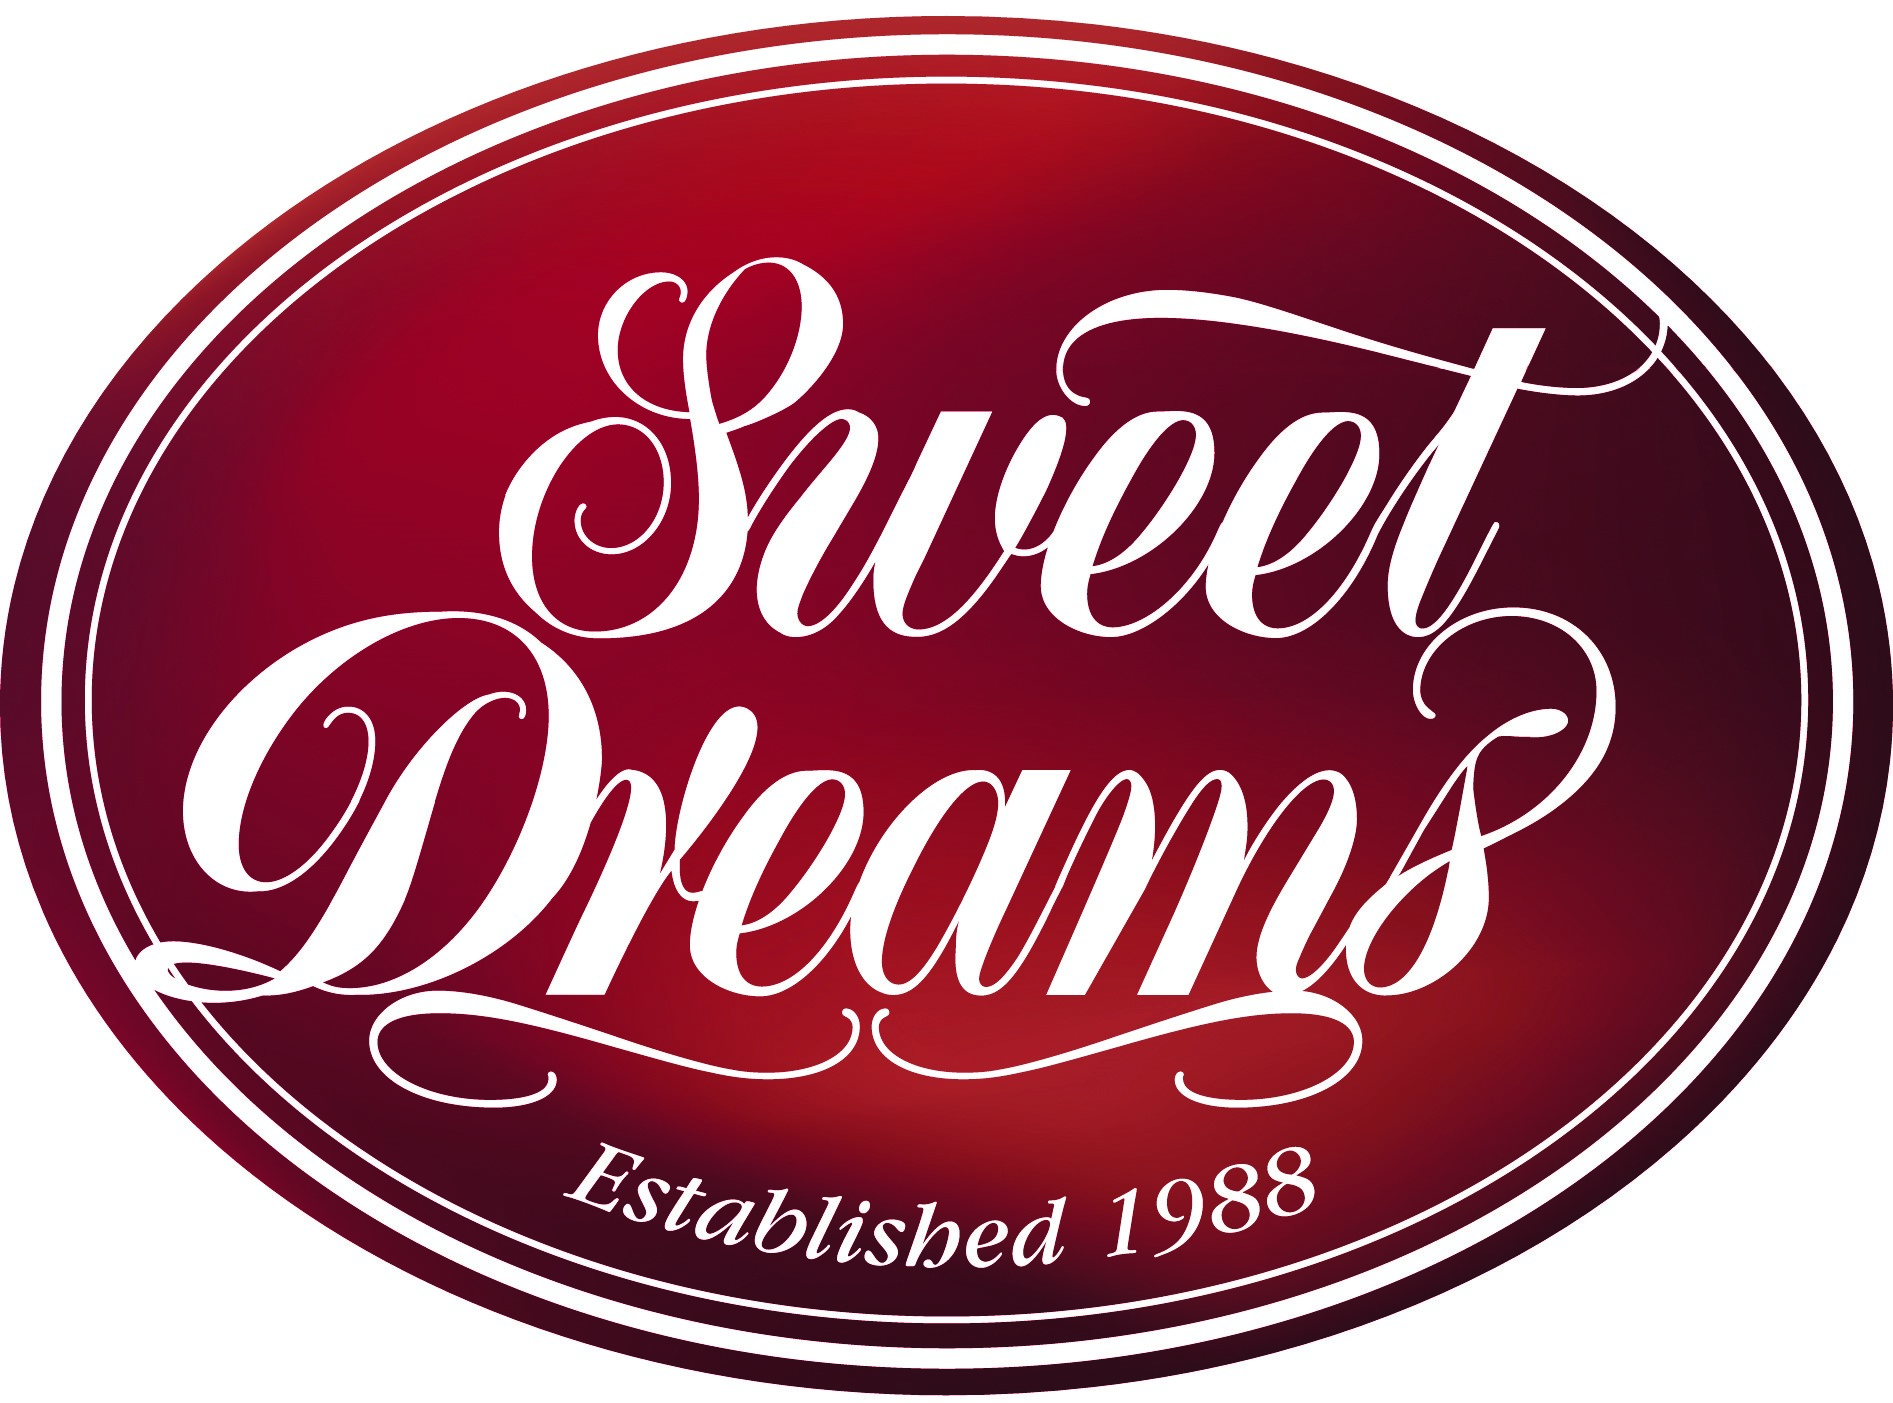 Sweet Dreams - Agent Required - West Midlands